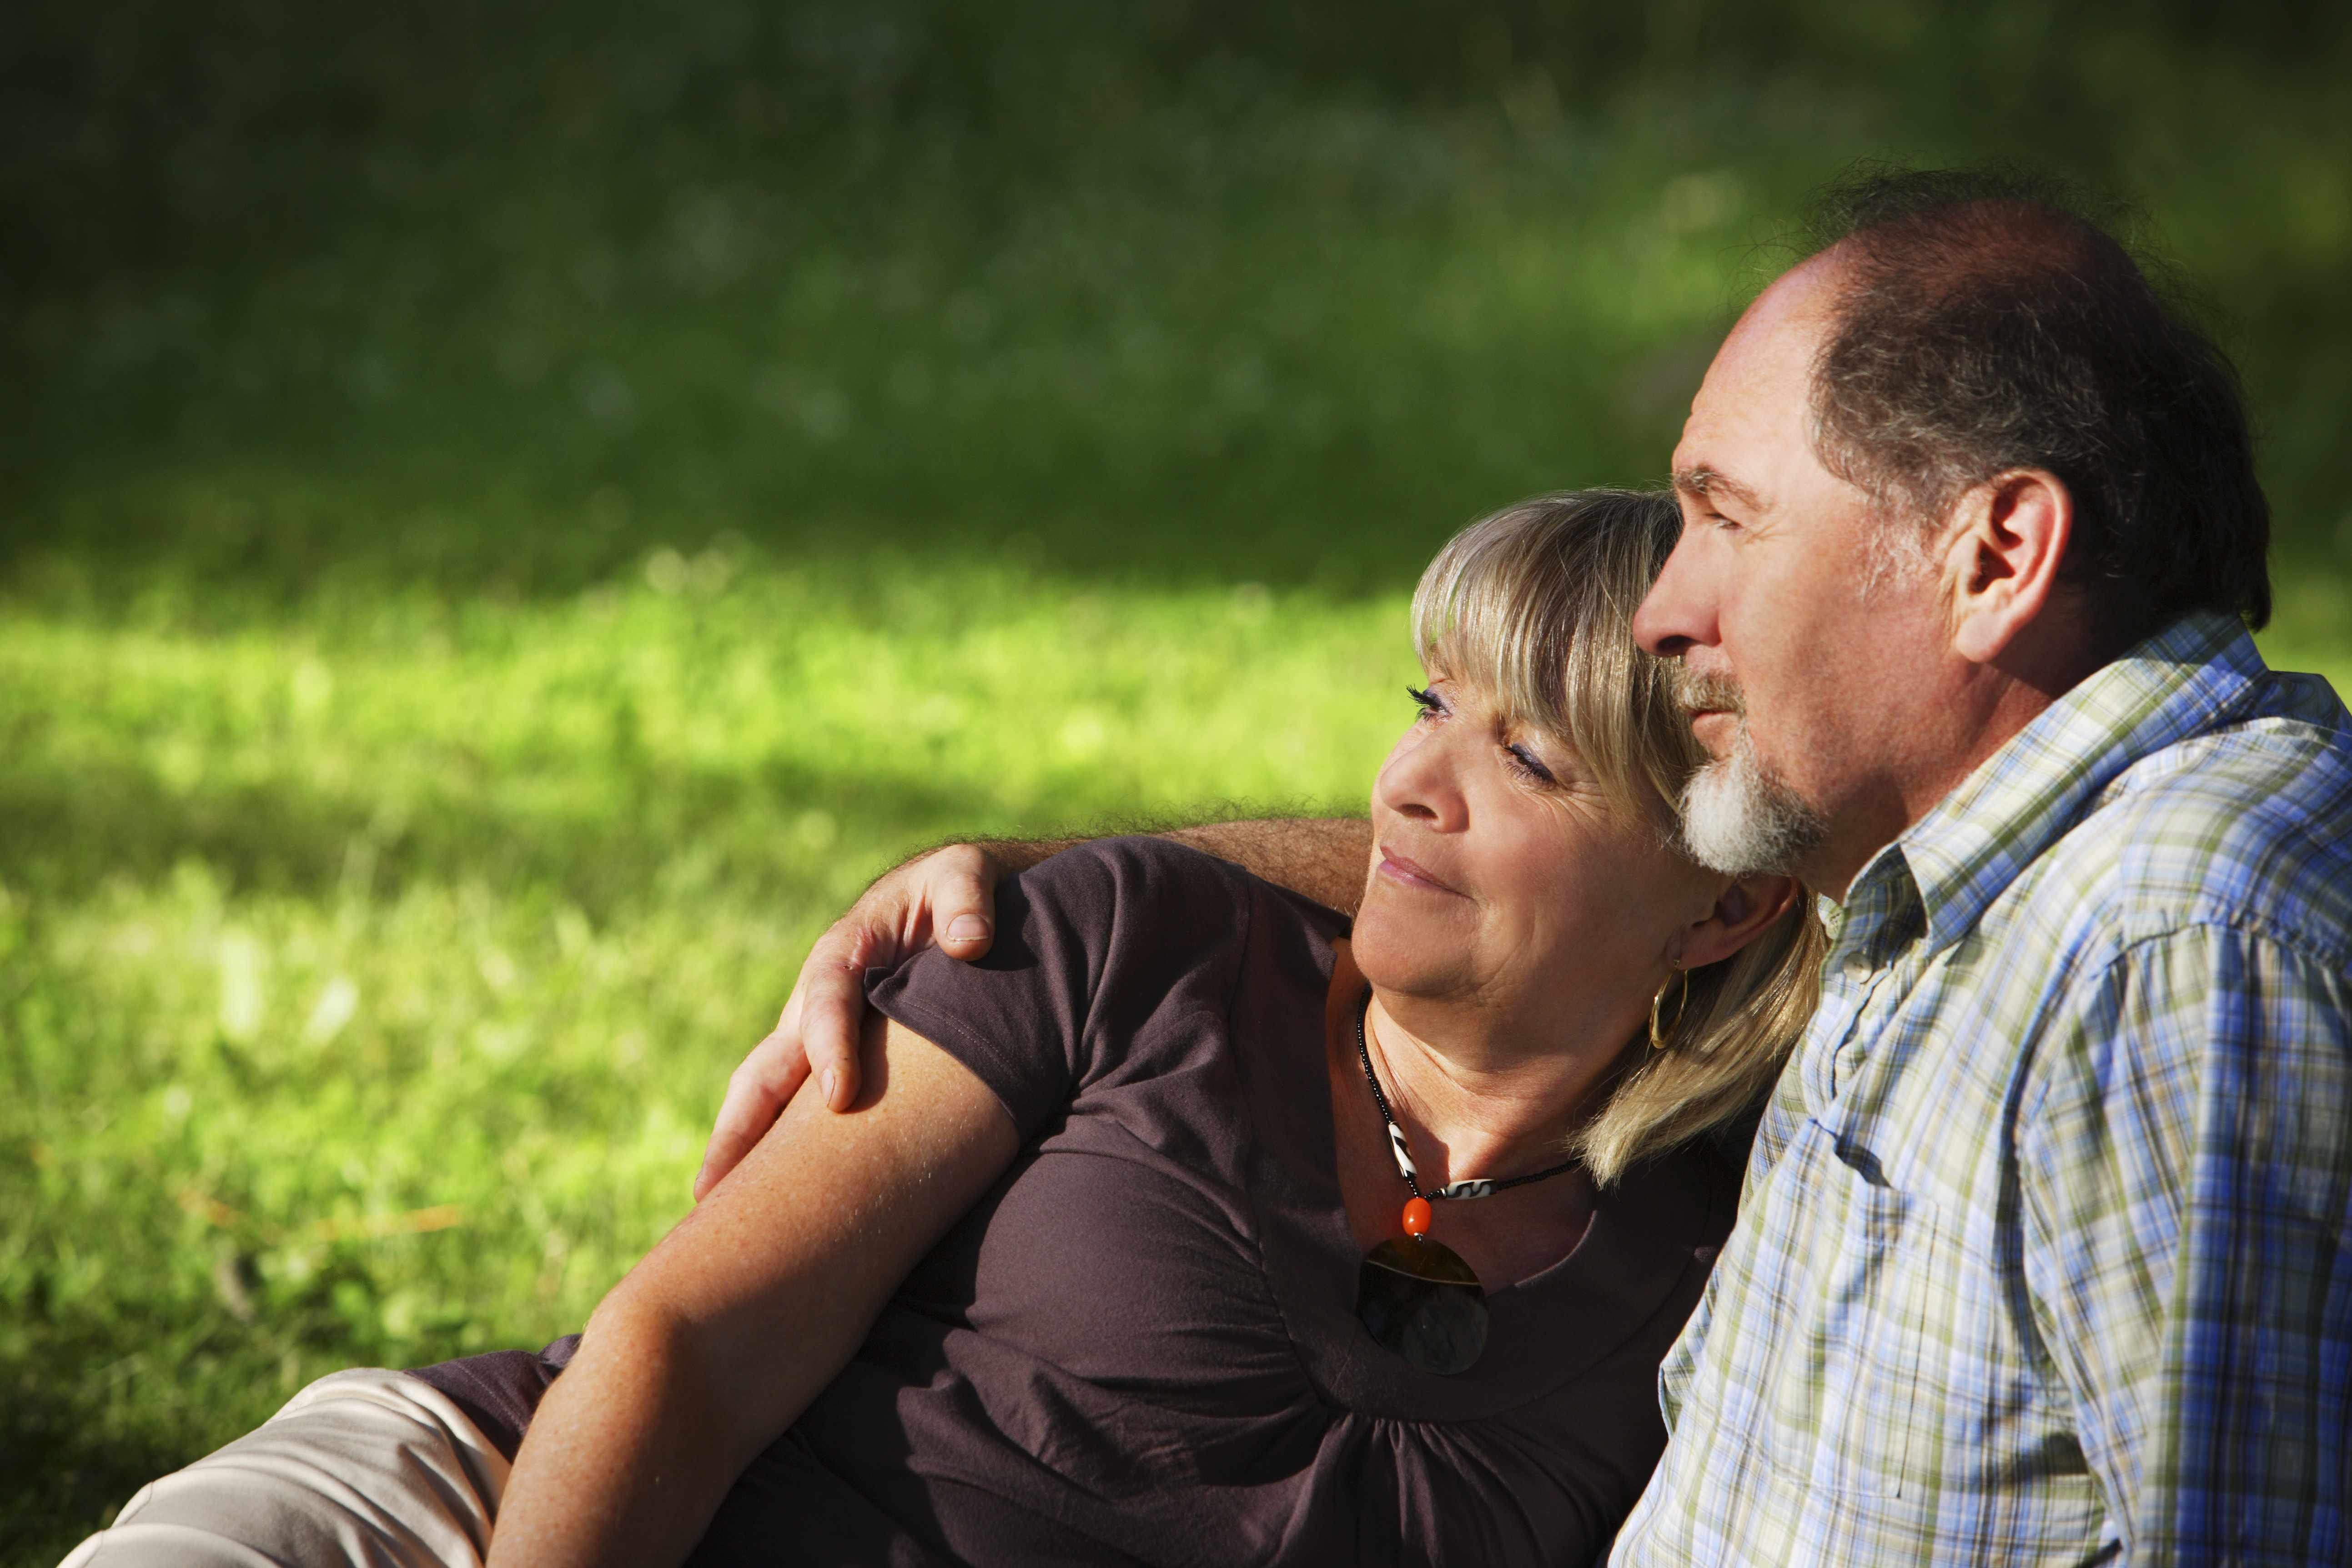 a middle-aged man and woman in each other's arms sitting outdoors in a park